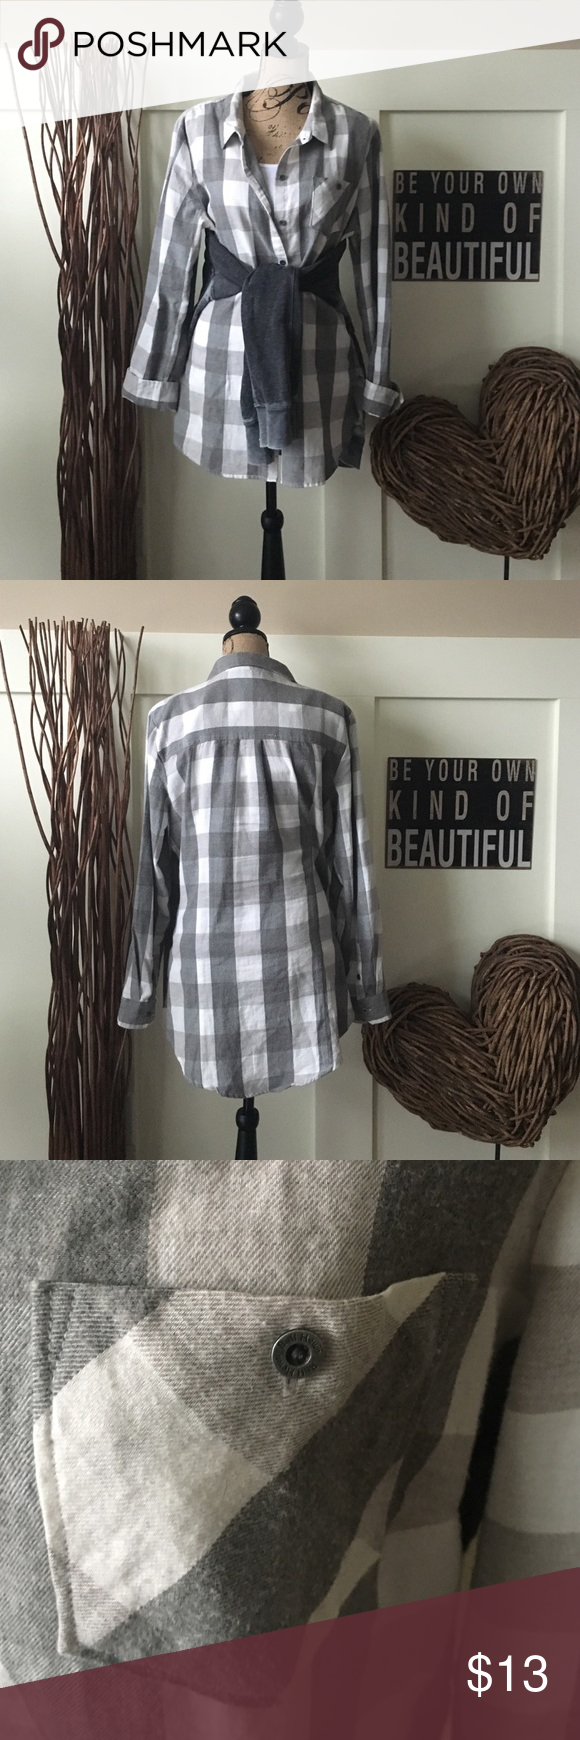 Ruff Hewn gray plaid flannel top This long plaid flannel is so soft and perfect by itself or layered.  Two tone light and dark gray. Ruff Hewn Tops